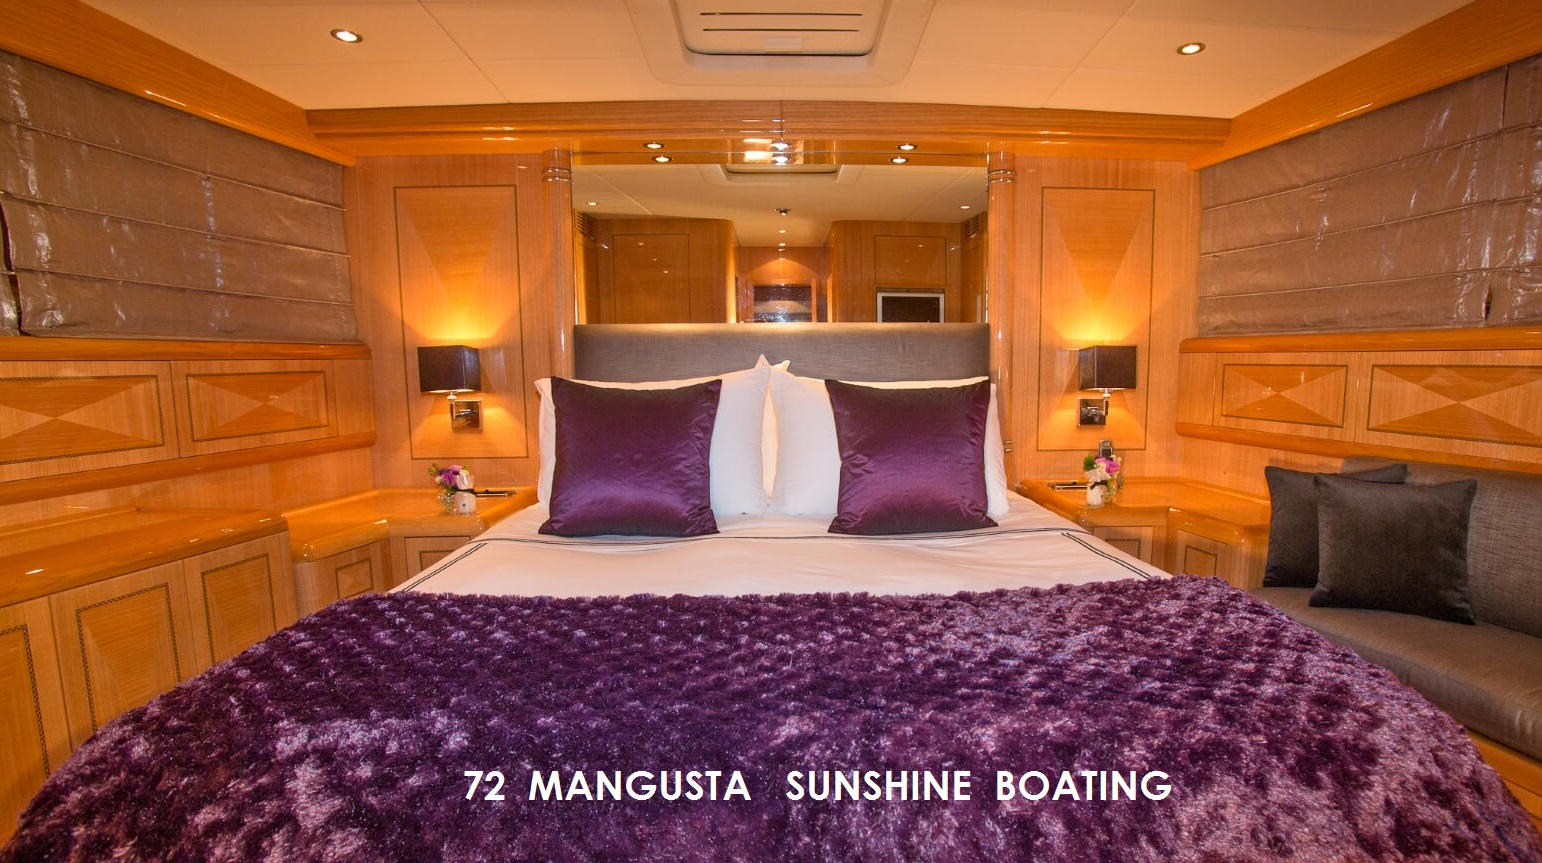 sunshine-boating-manusta-72-o